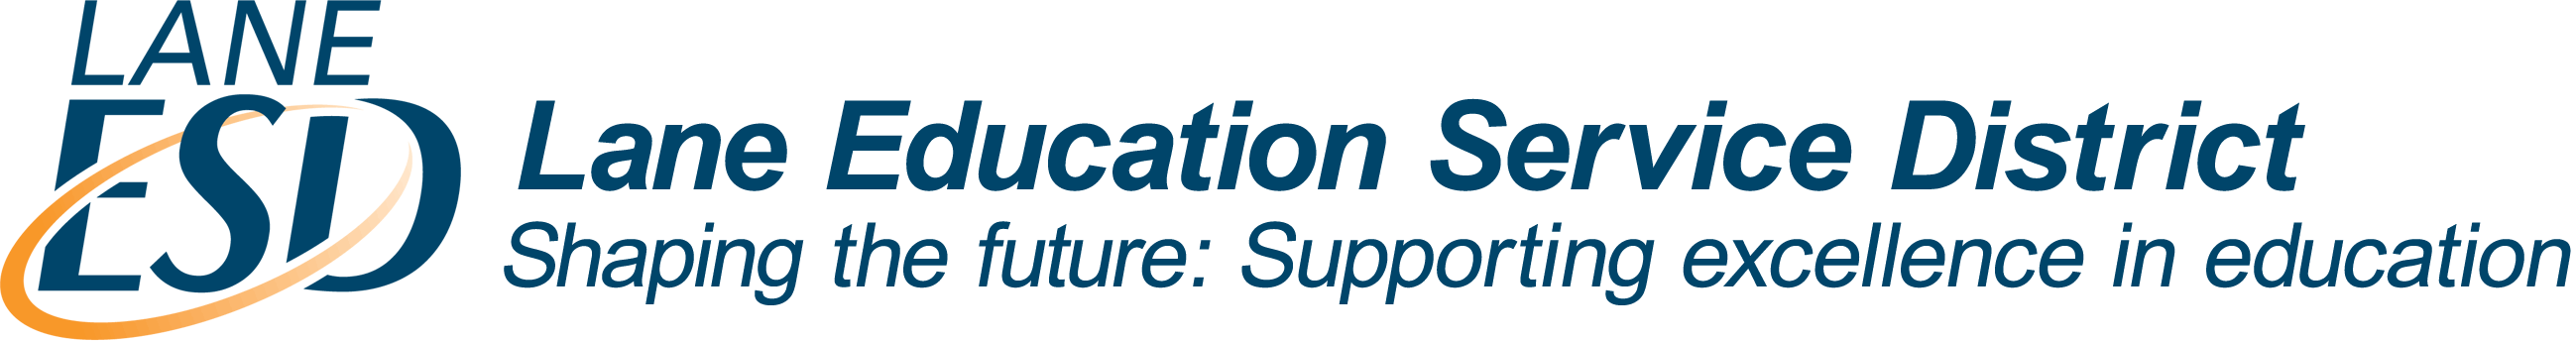 Lane ESD Logo and Core Purpose - Shaping the Future: Supporting Excellence in Education